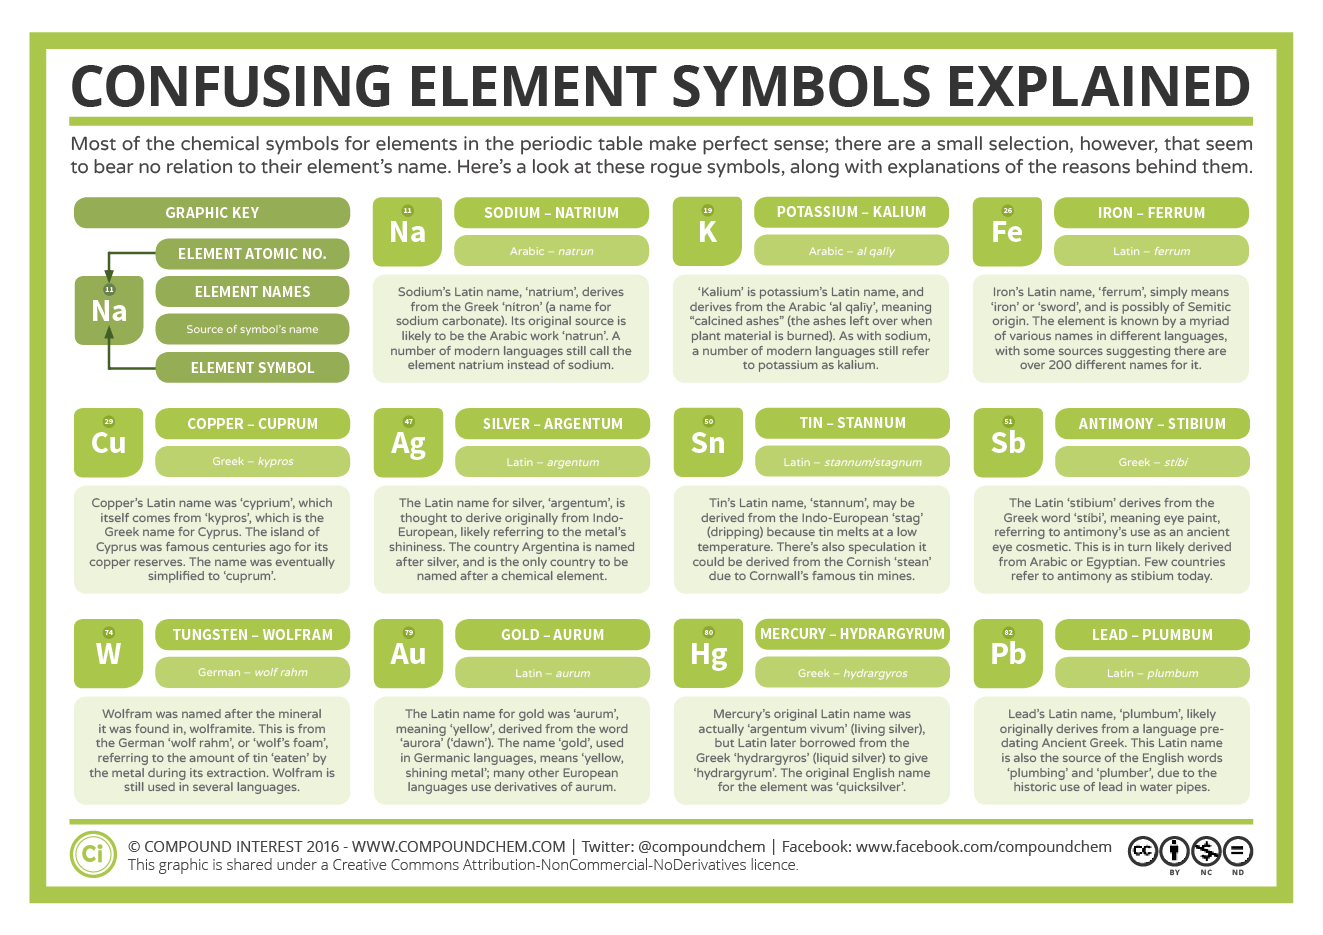 Compound interest element oddities 11 confusing chemical symbols 11 confusing chemical element symbols explained urtaz Image collections